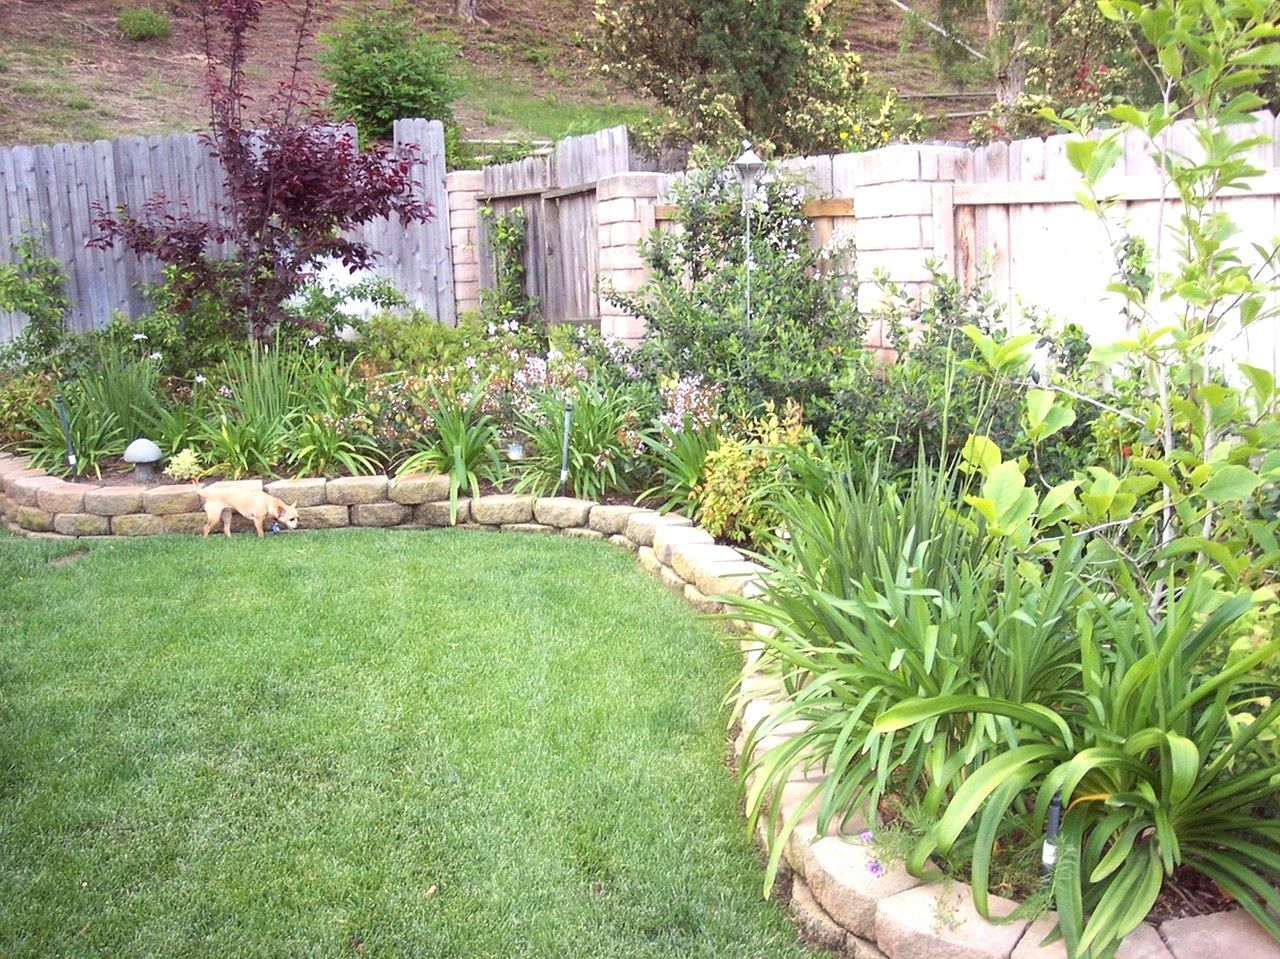 Garden Ideas Nz garden inspiration nz small garden landscaping ideas nz the garden